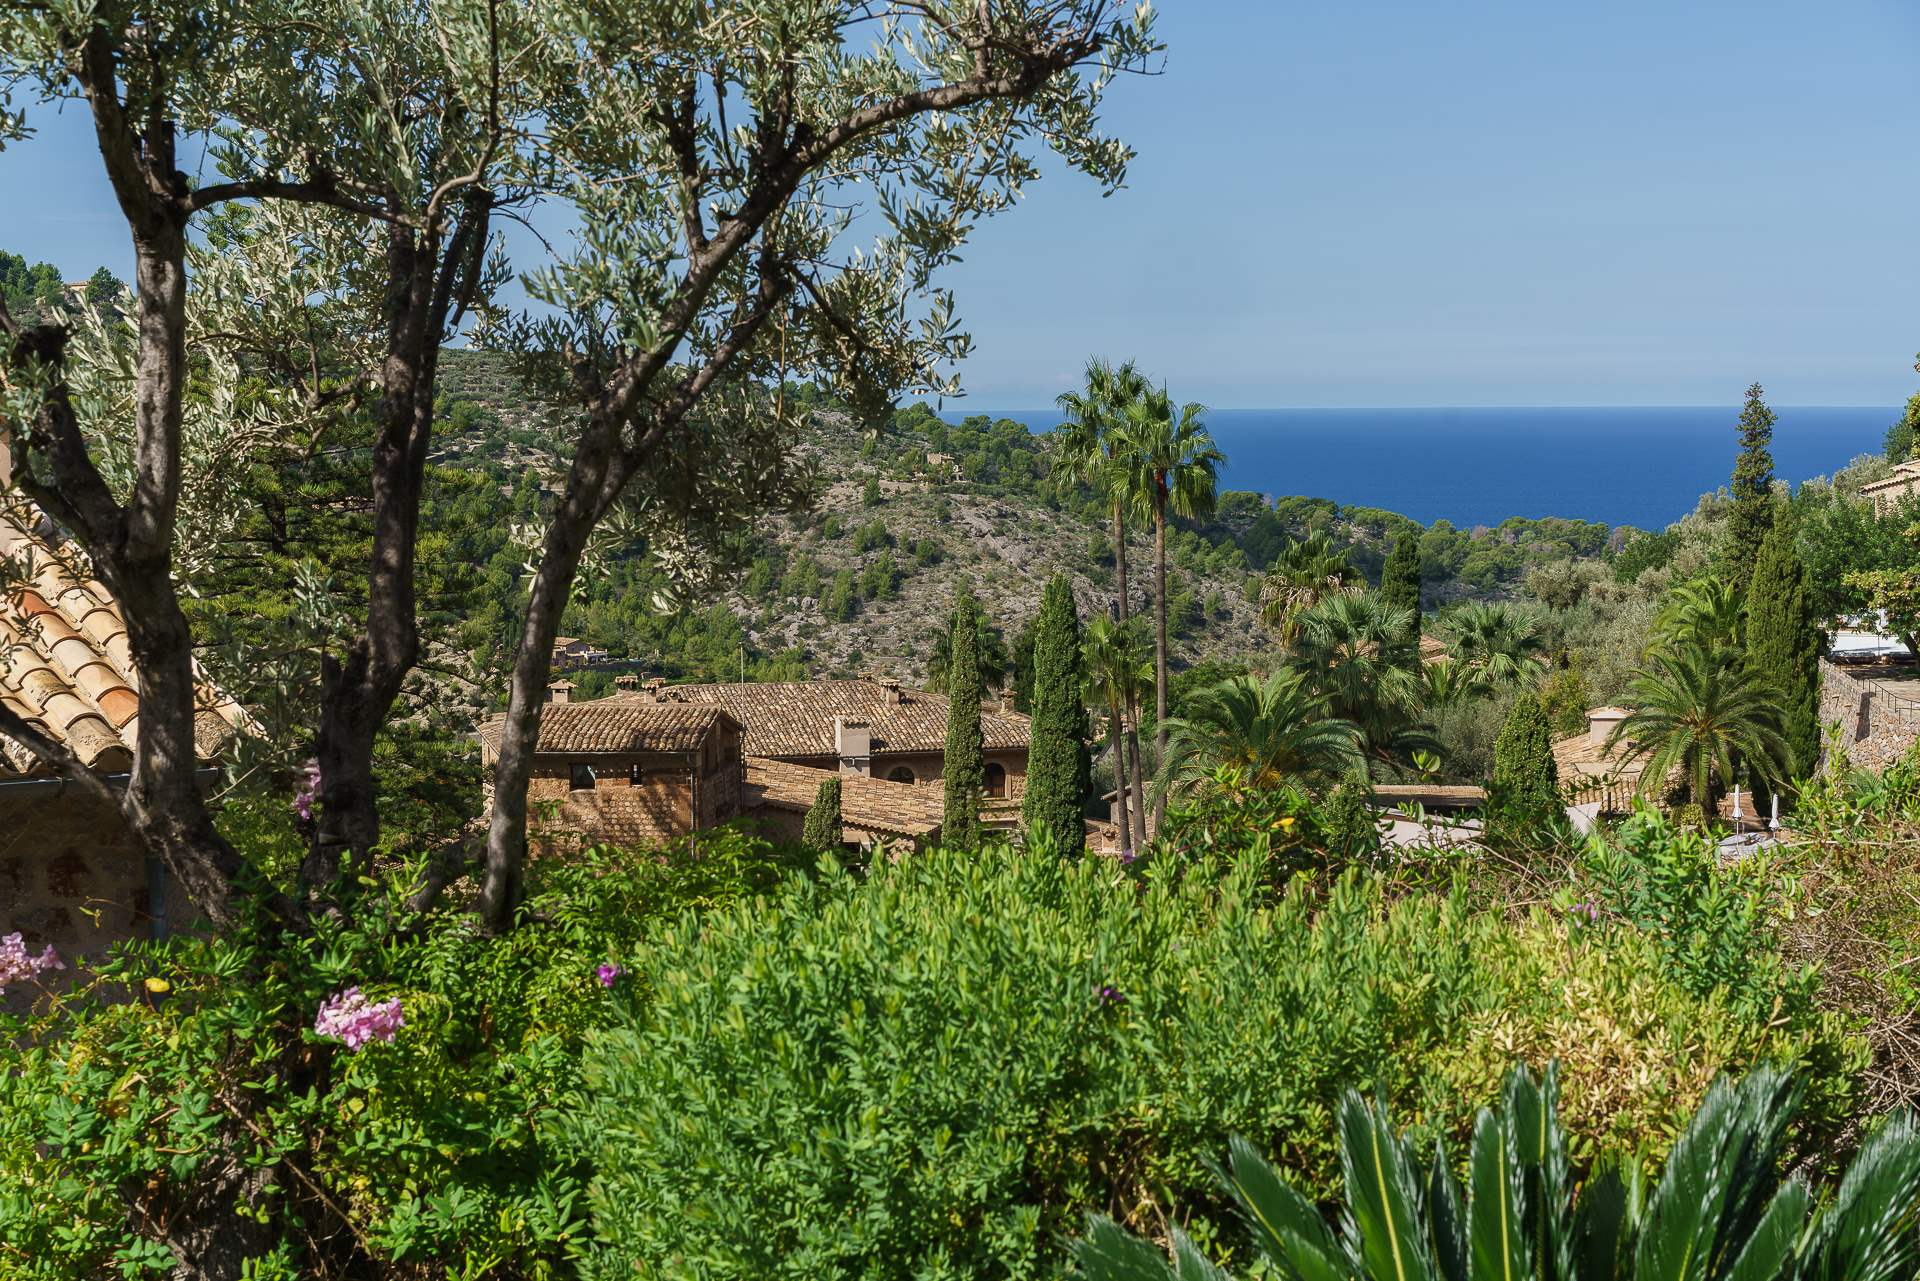 Sa Tanca, 3 Bedroom Rental, 3 bedroom villa in Soller & Deia, Majorca Photo #33